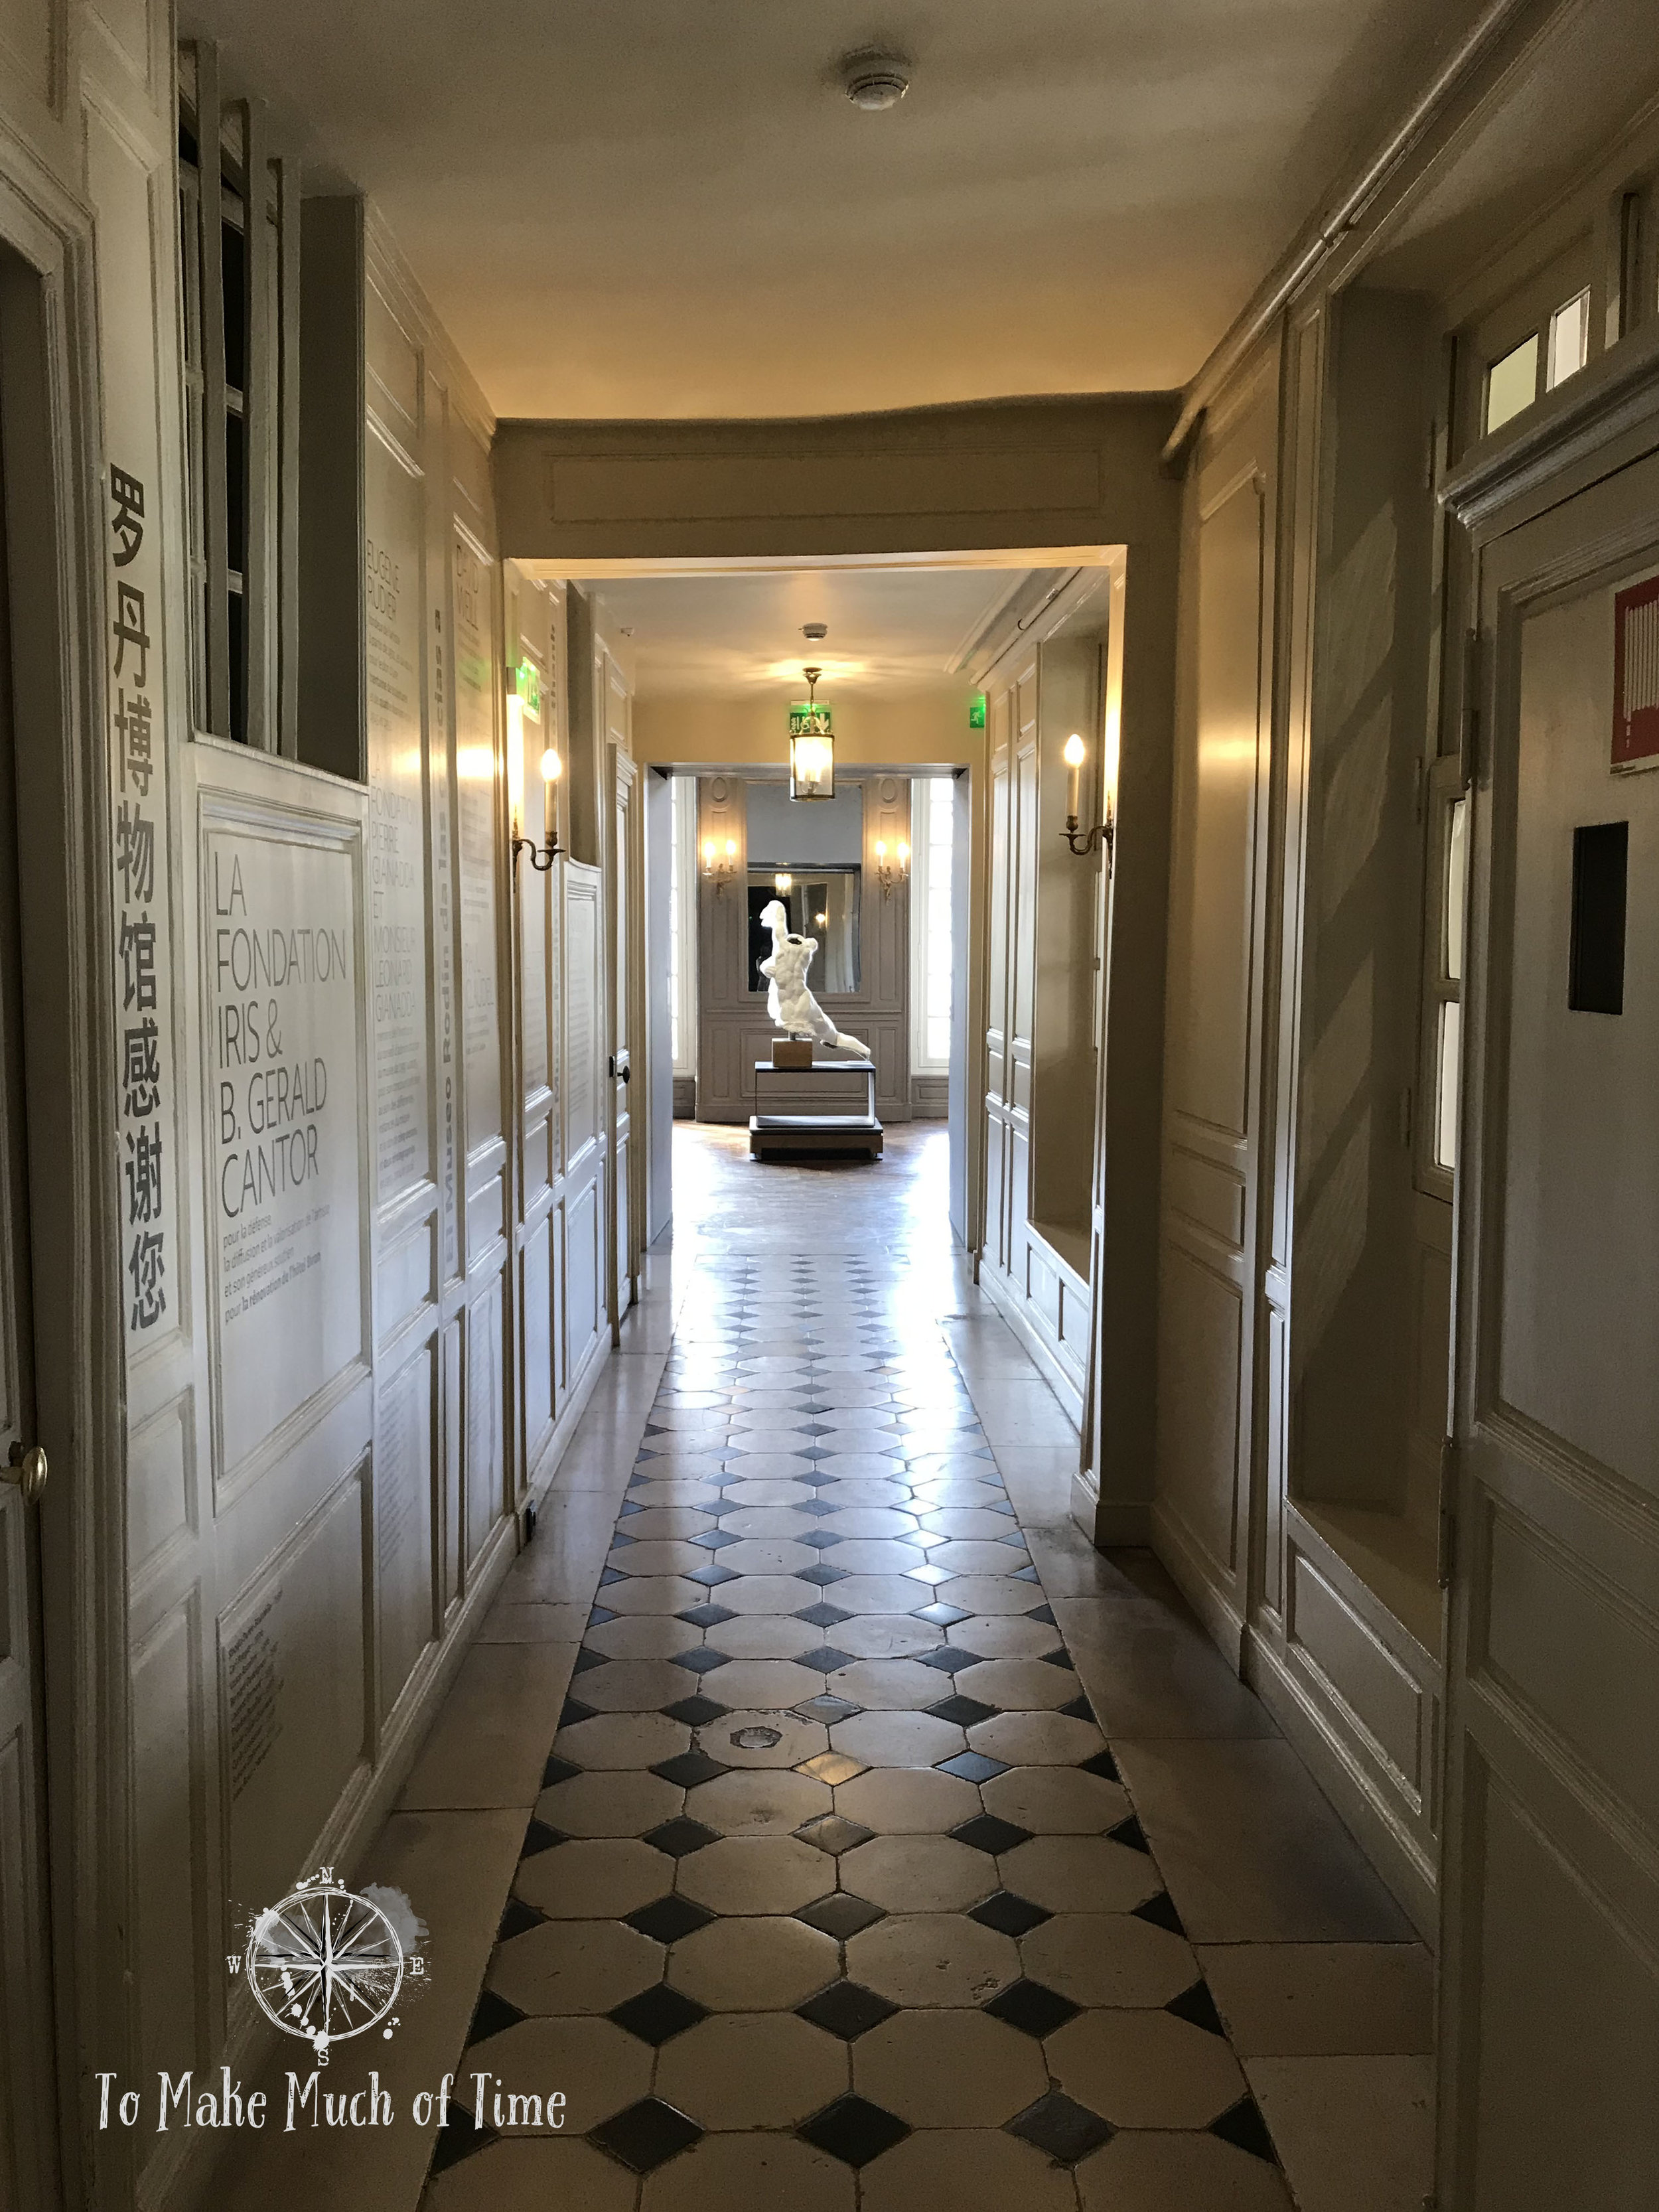 Musee Rodin houses a large collection of sculptures, drawings, and photography.